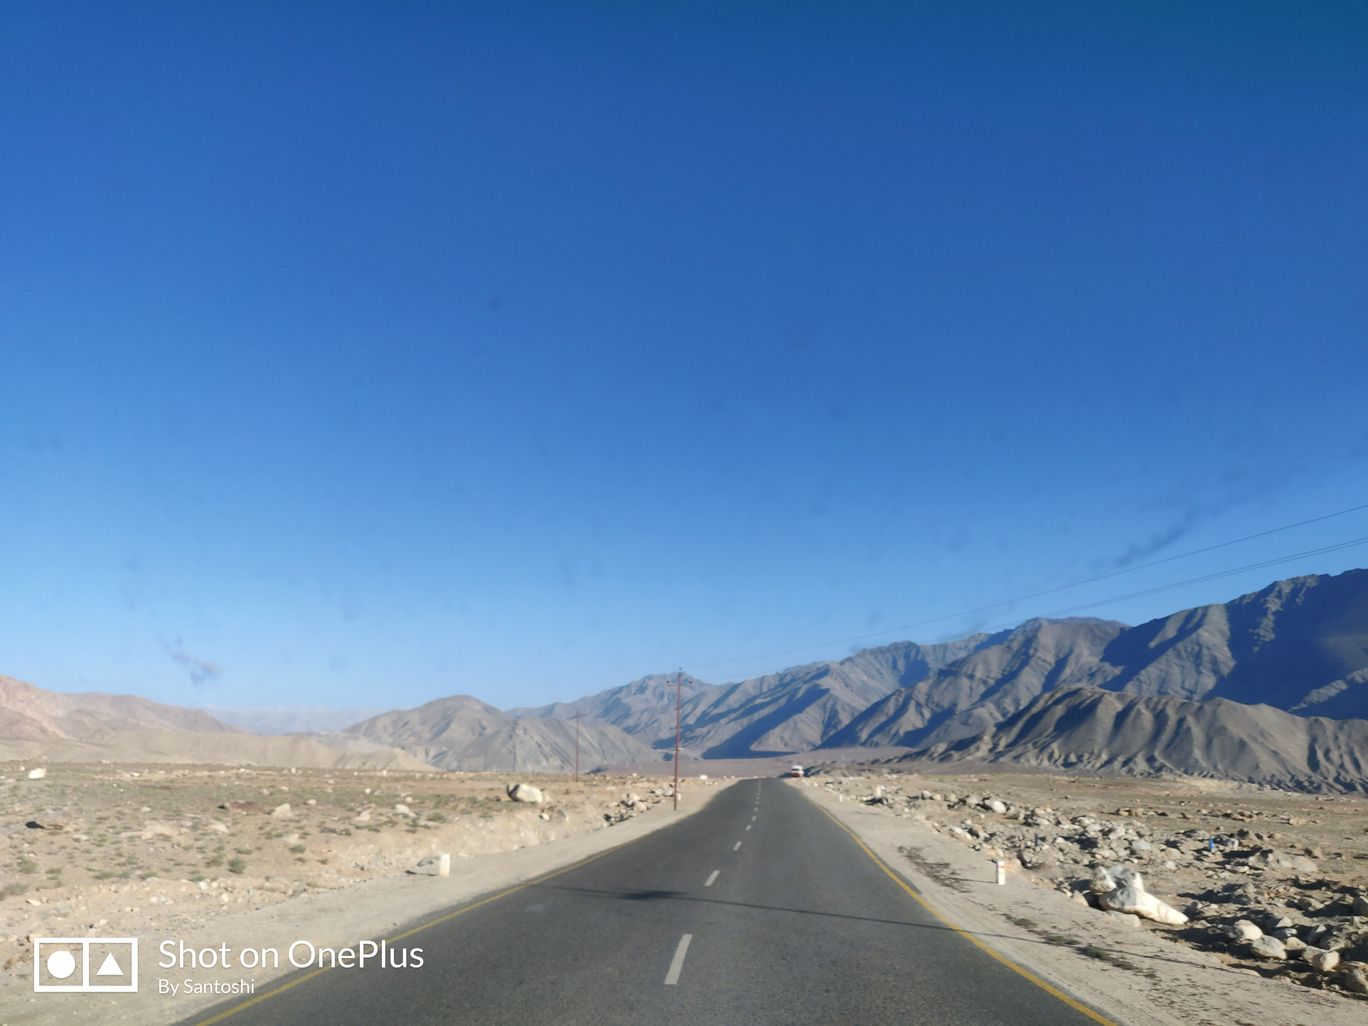 Photo of Leh By Santoshi Pal